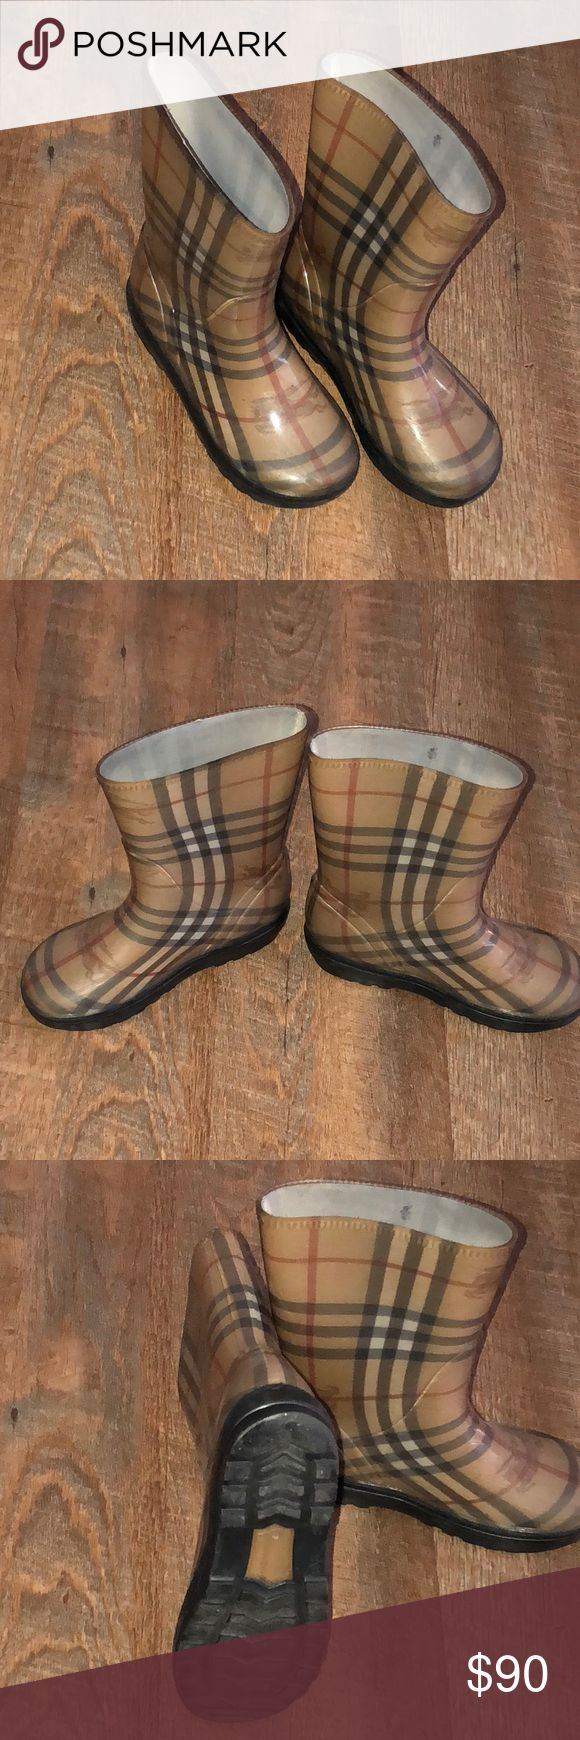 Burberry Kids Rain Boots 100% Authentic Burberry Kids Rain Boots. I NO LONGER HAVE THE BOX. Burberry Shoes Boots